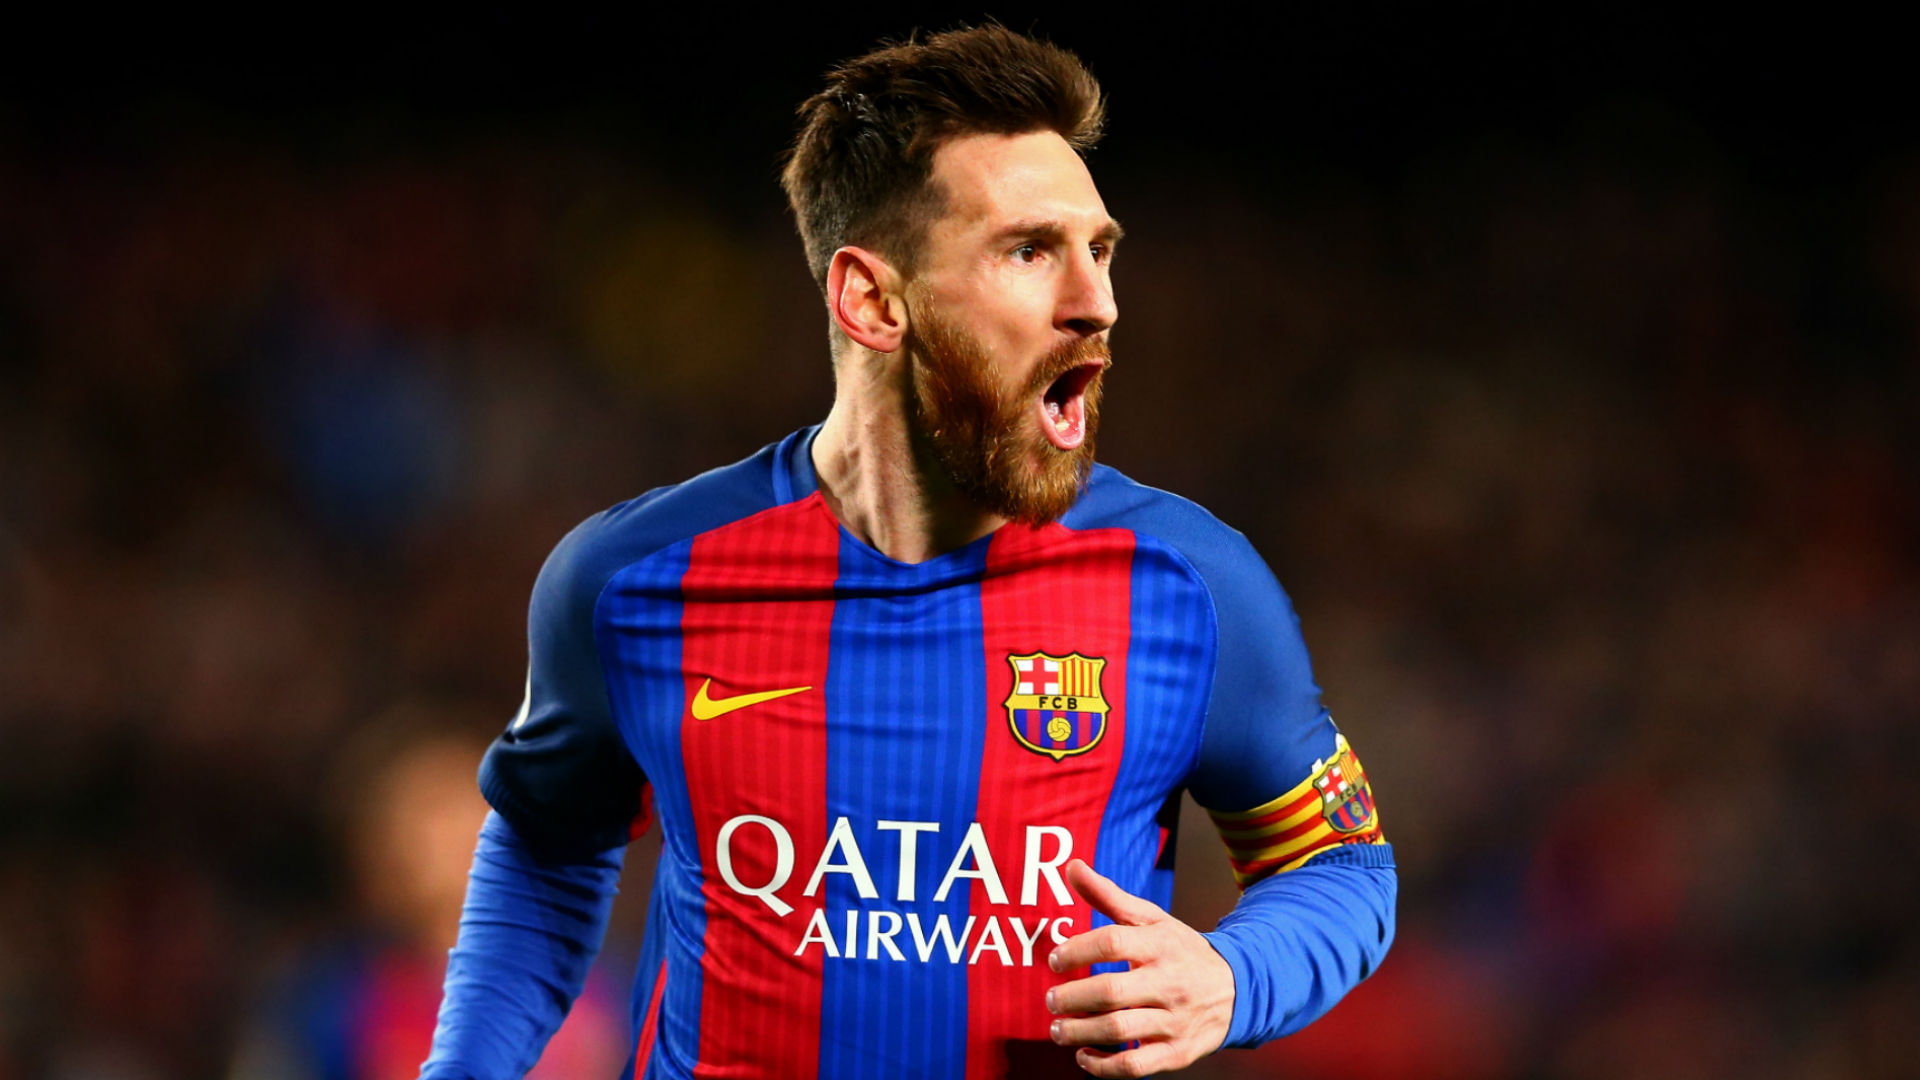 La Liga schedule 2020: What games are on today? Times, TV channels to watch soccer in USA